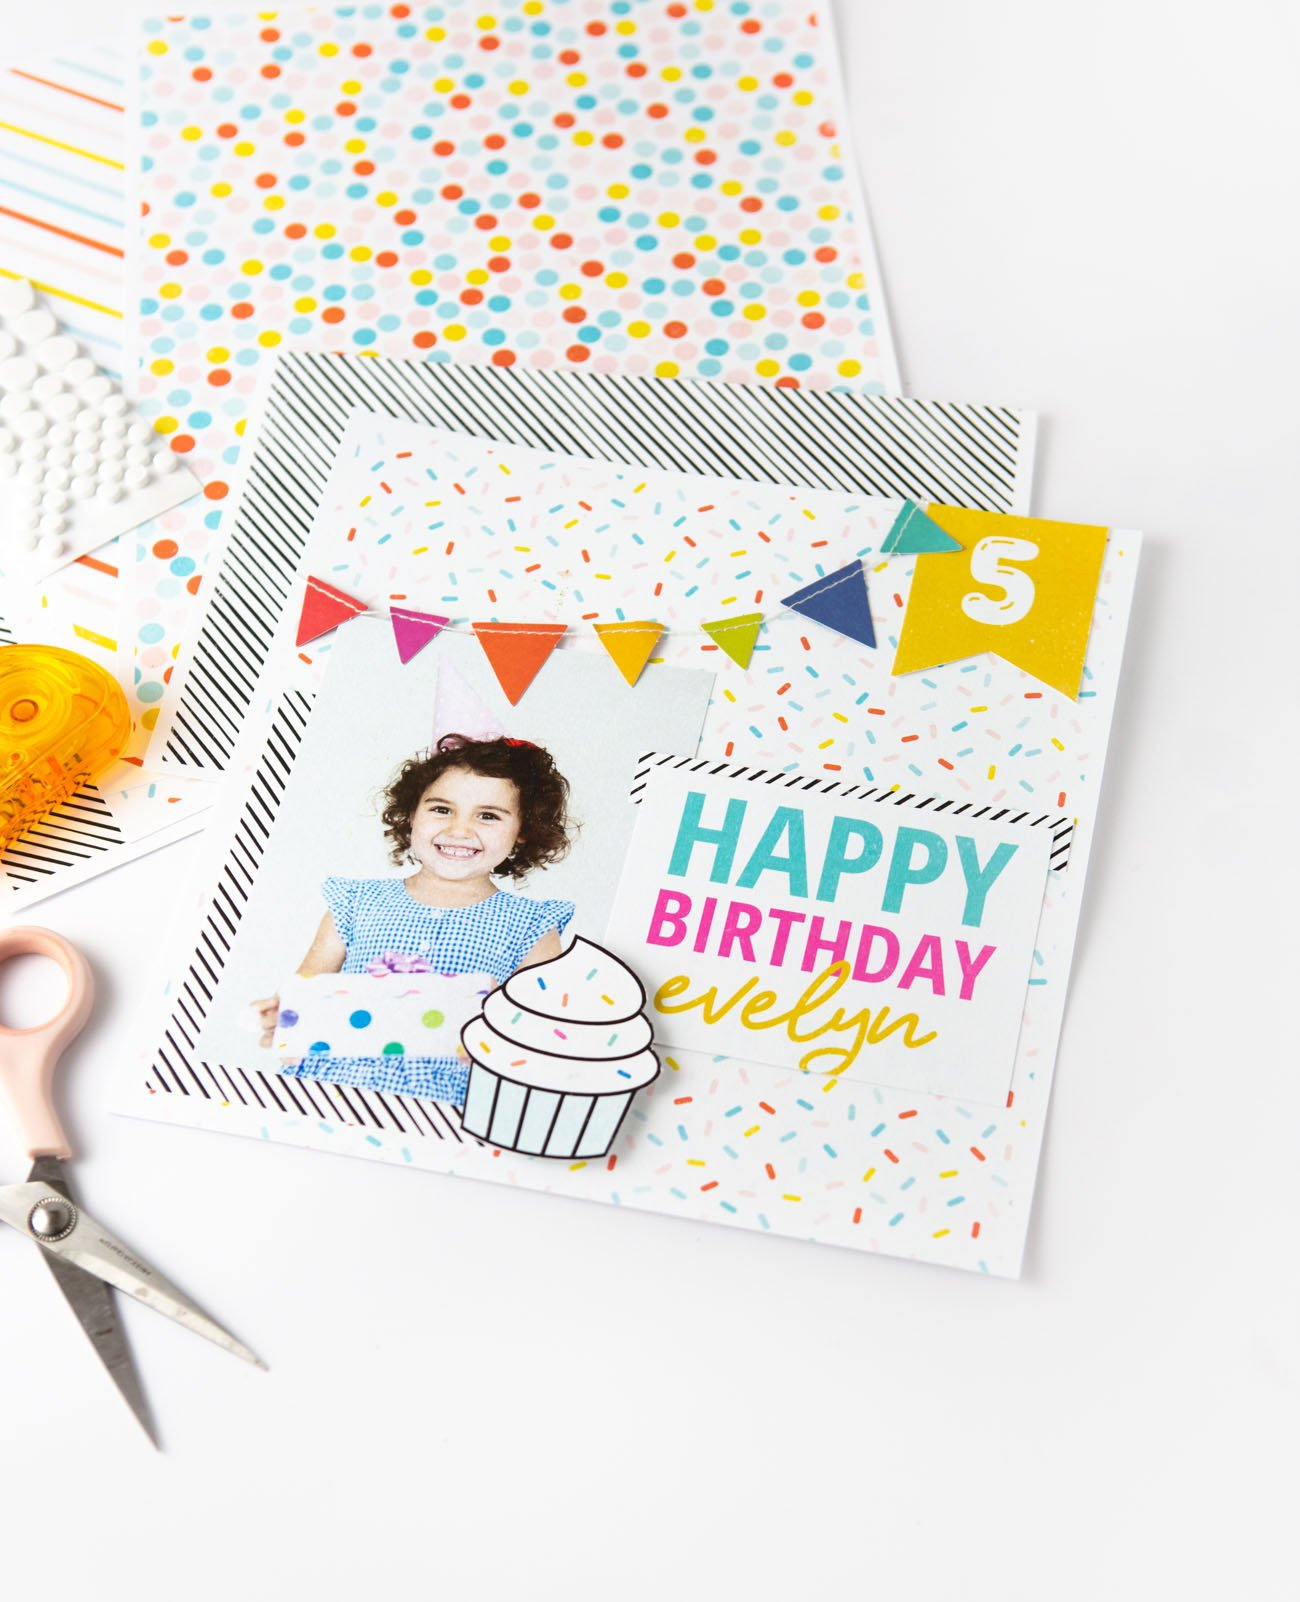 Colorful rainbow scrapbook page design with Happy Birthday text, cupcake, and banner